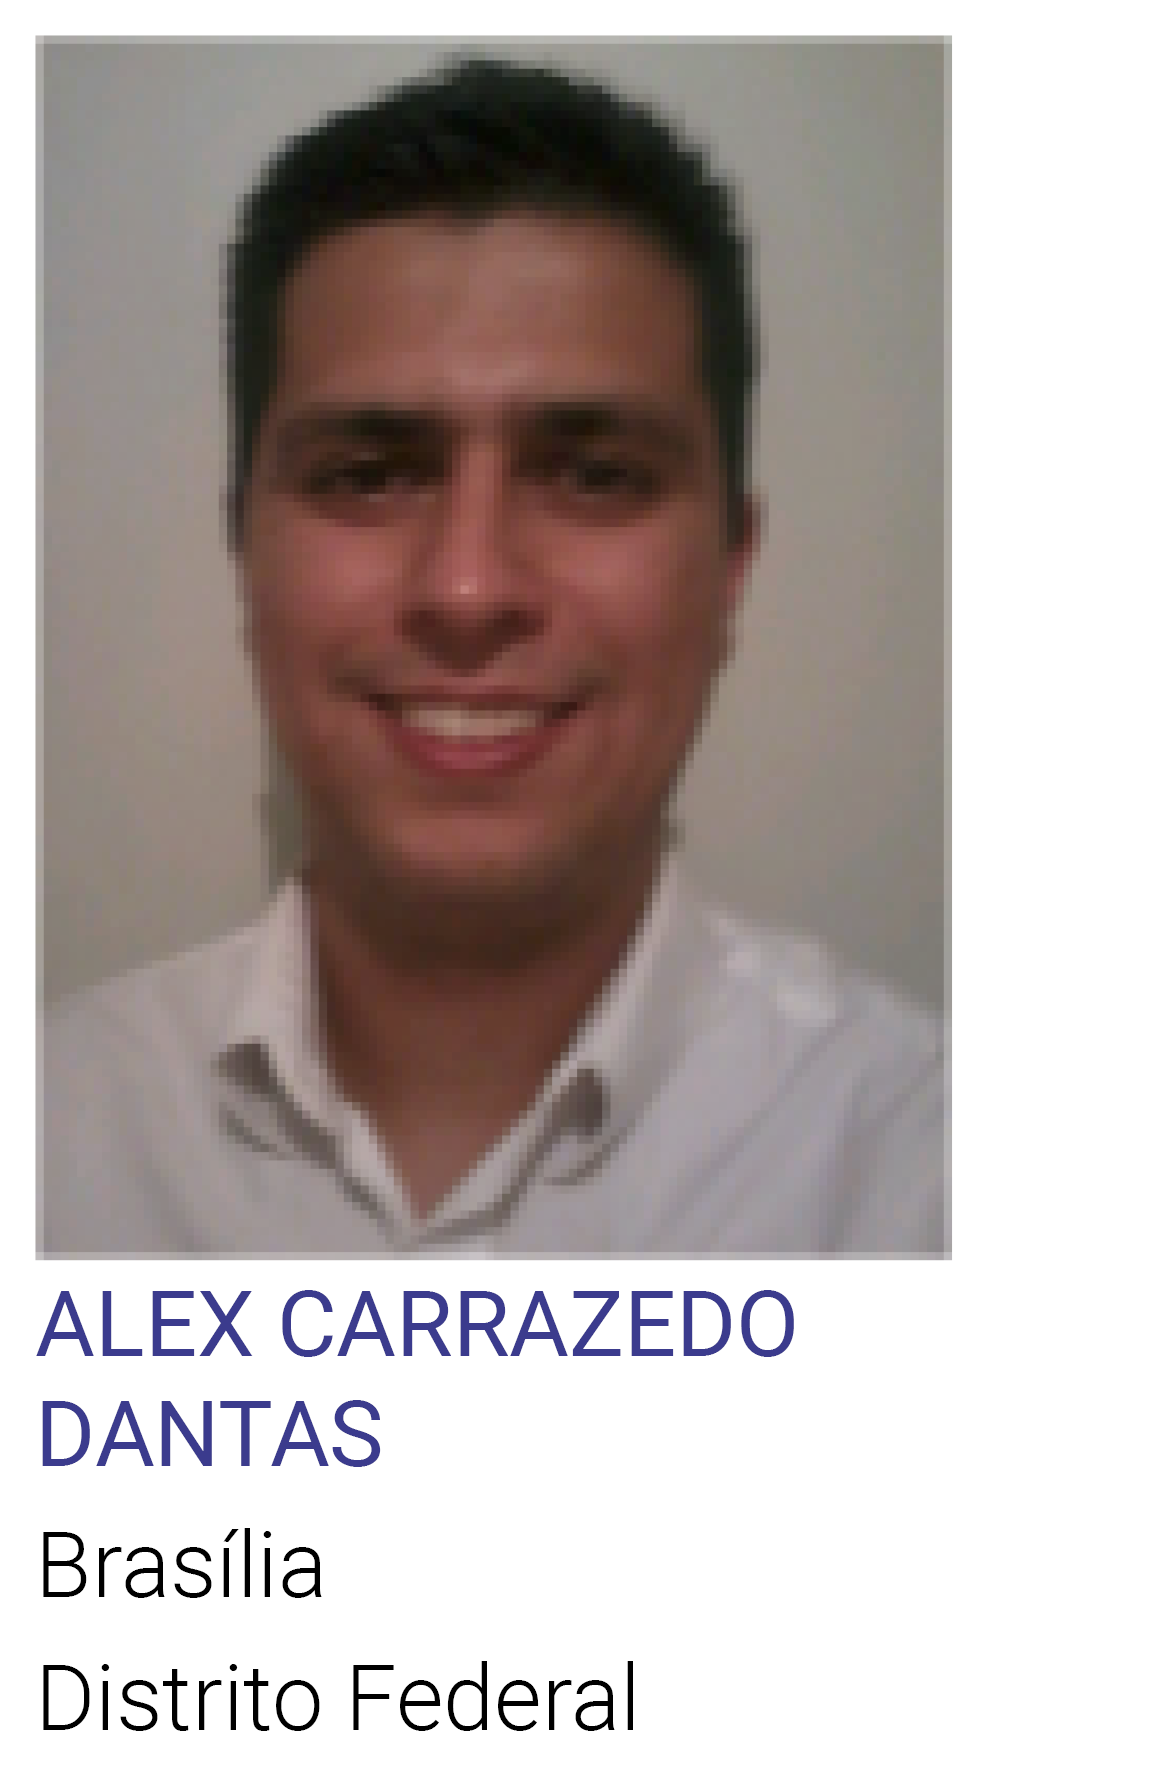 ALEX CARRAZEDO DANTAS